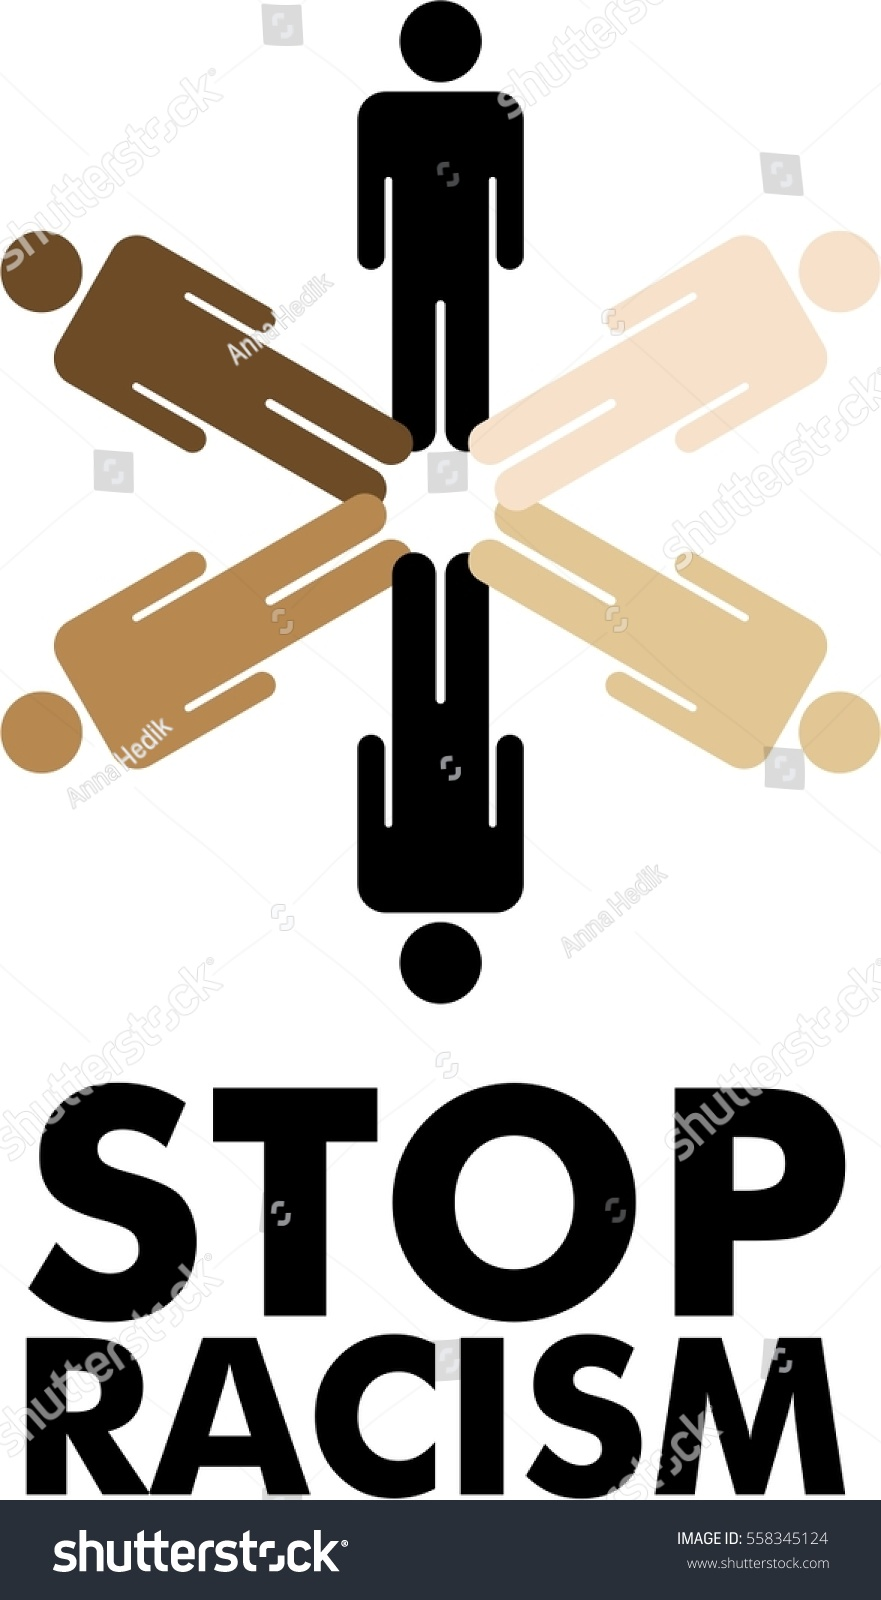 Stop racism icon flat sign symbol stock vector 558345124 stop racism icon flat sign symbol logo vector biocorpaavc Images